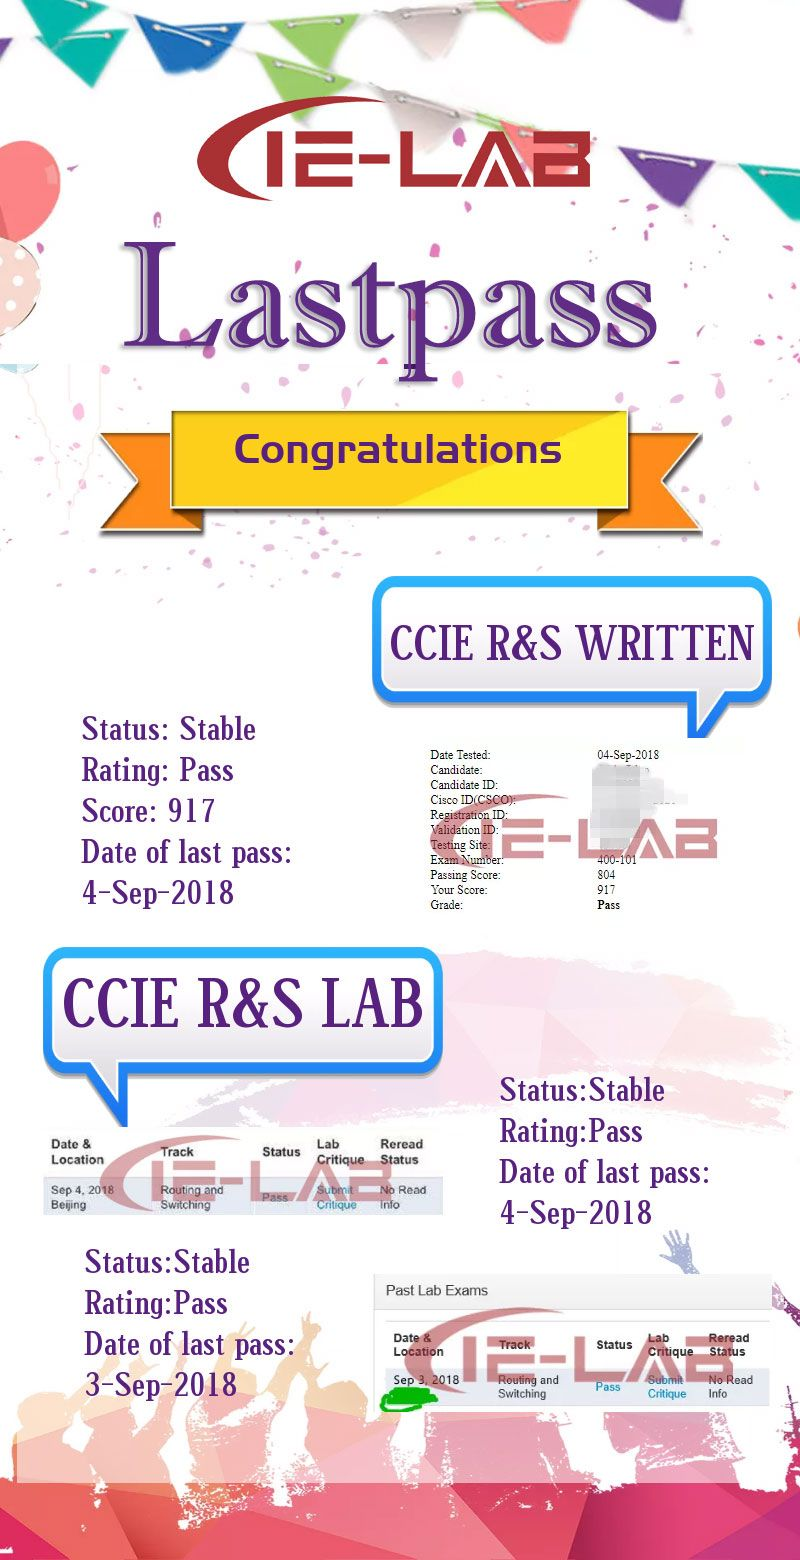 CCIE R&S exam is stable now. IELAB keep passing CCIE R&S